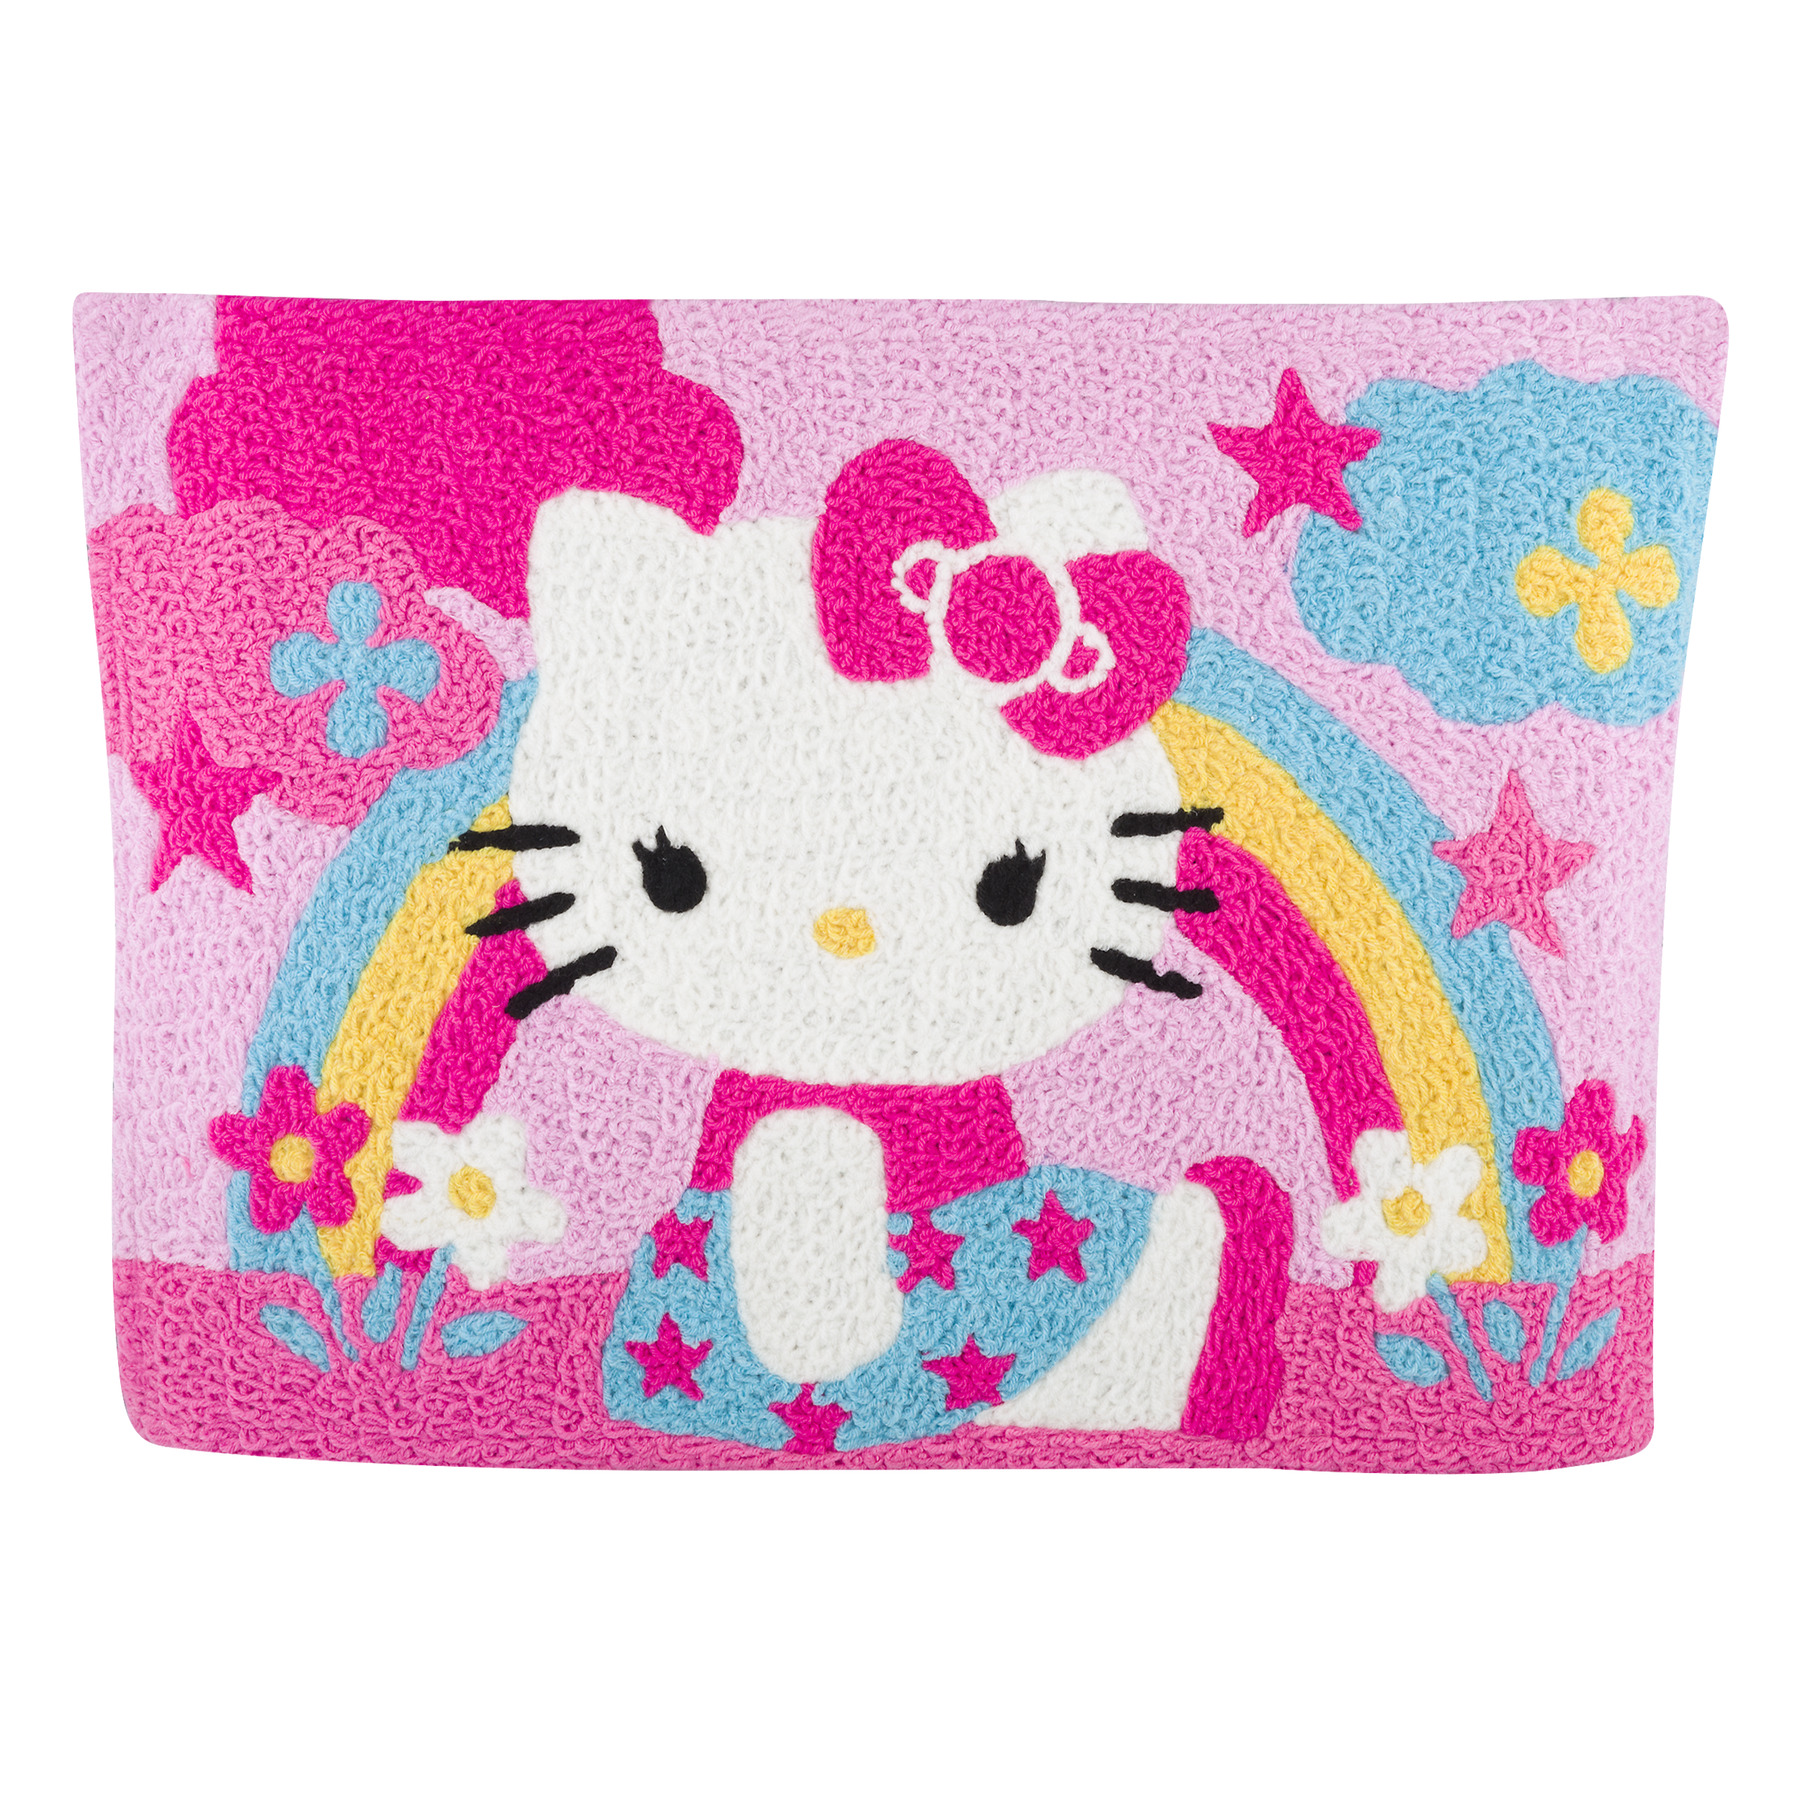 Hello Kitty Rug, 1.0 OZ